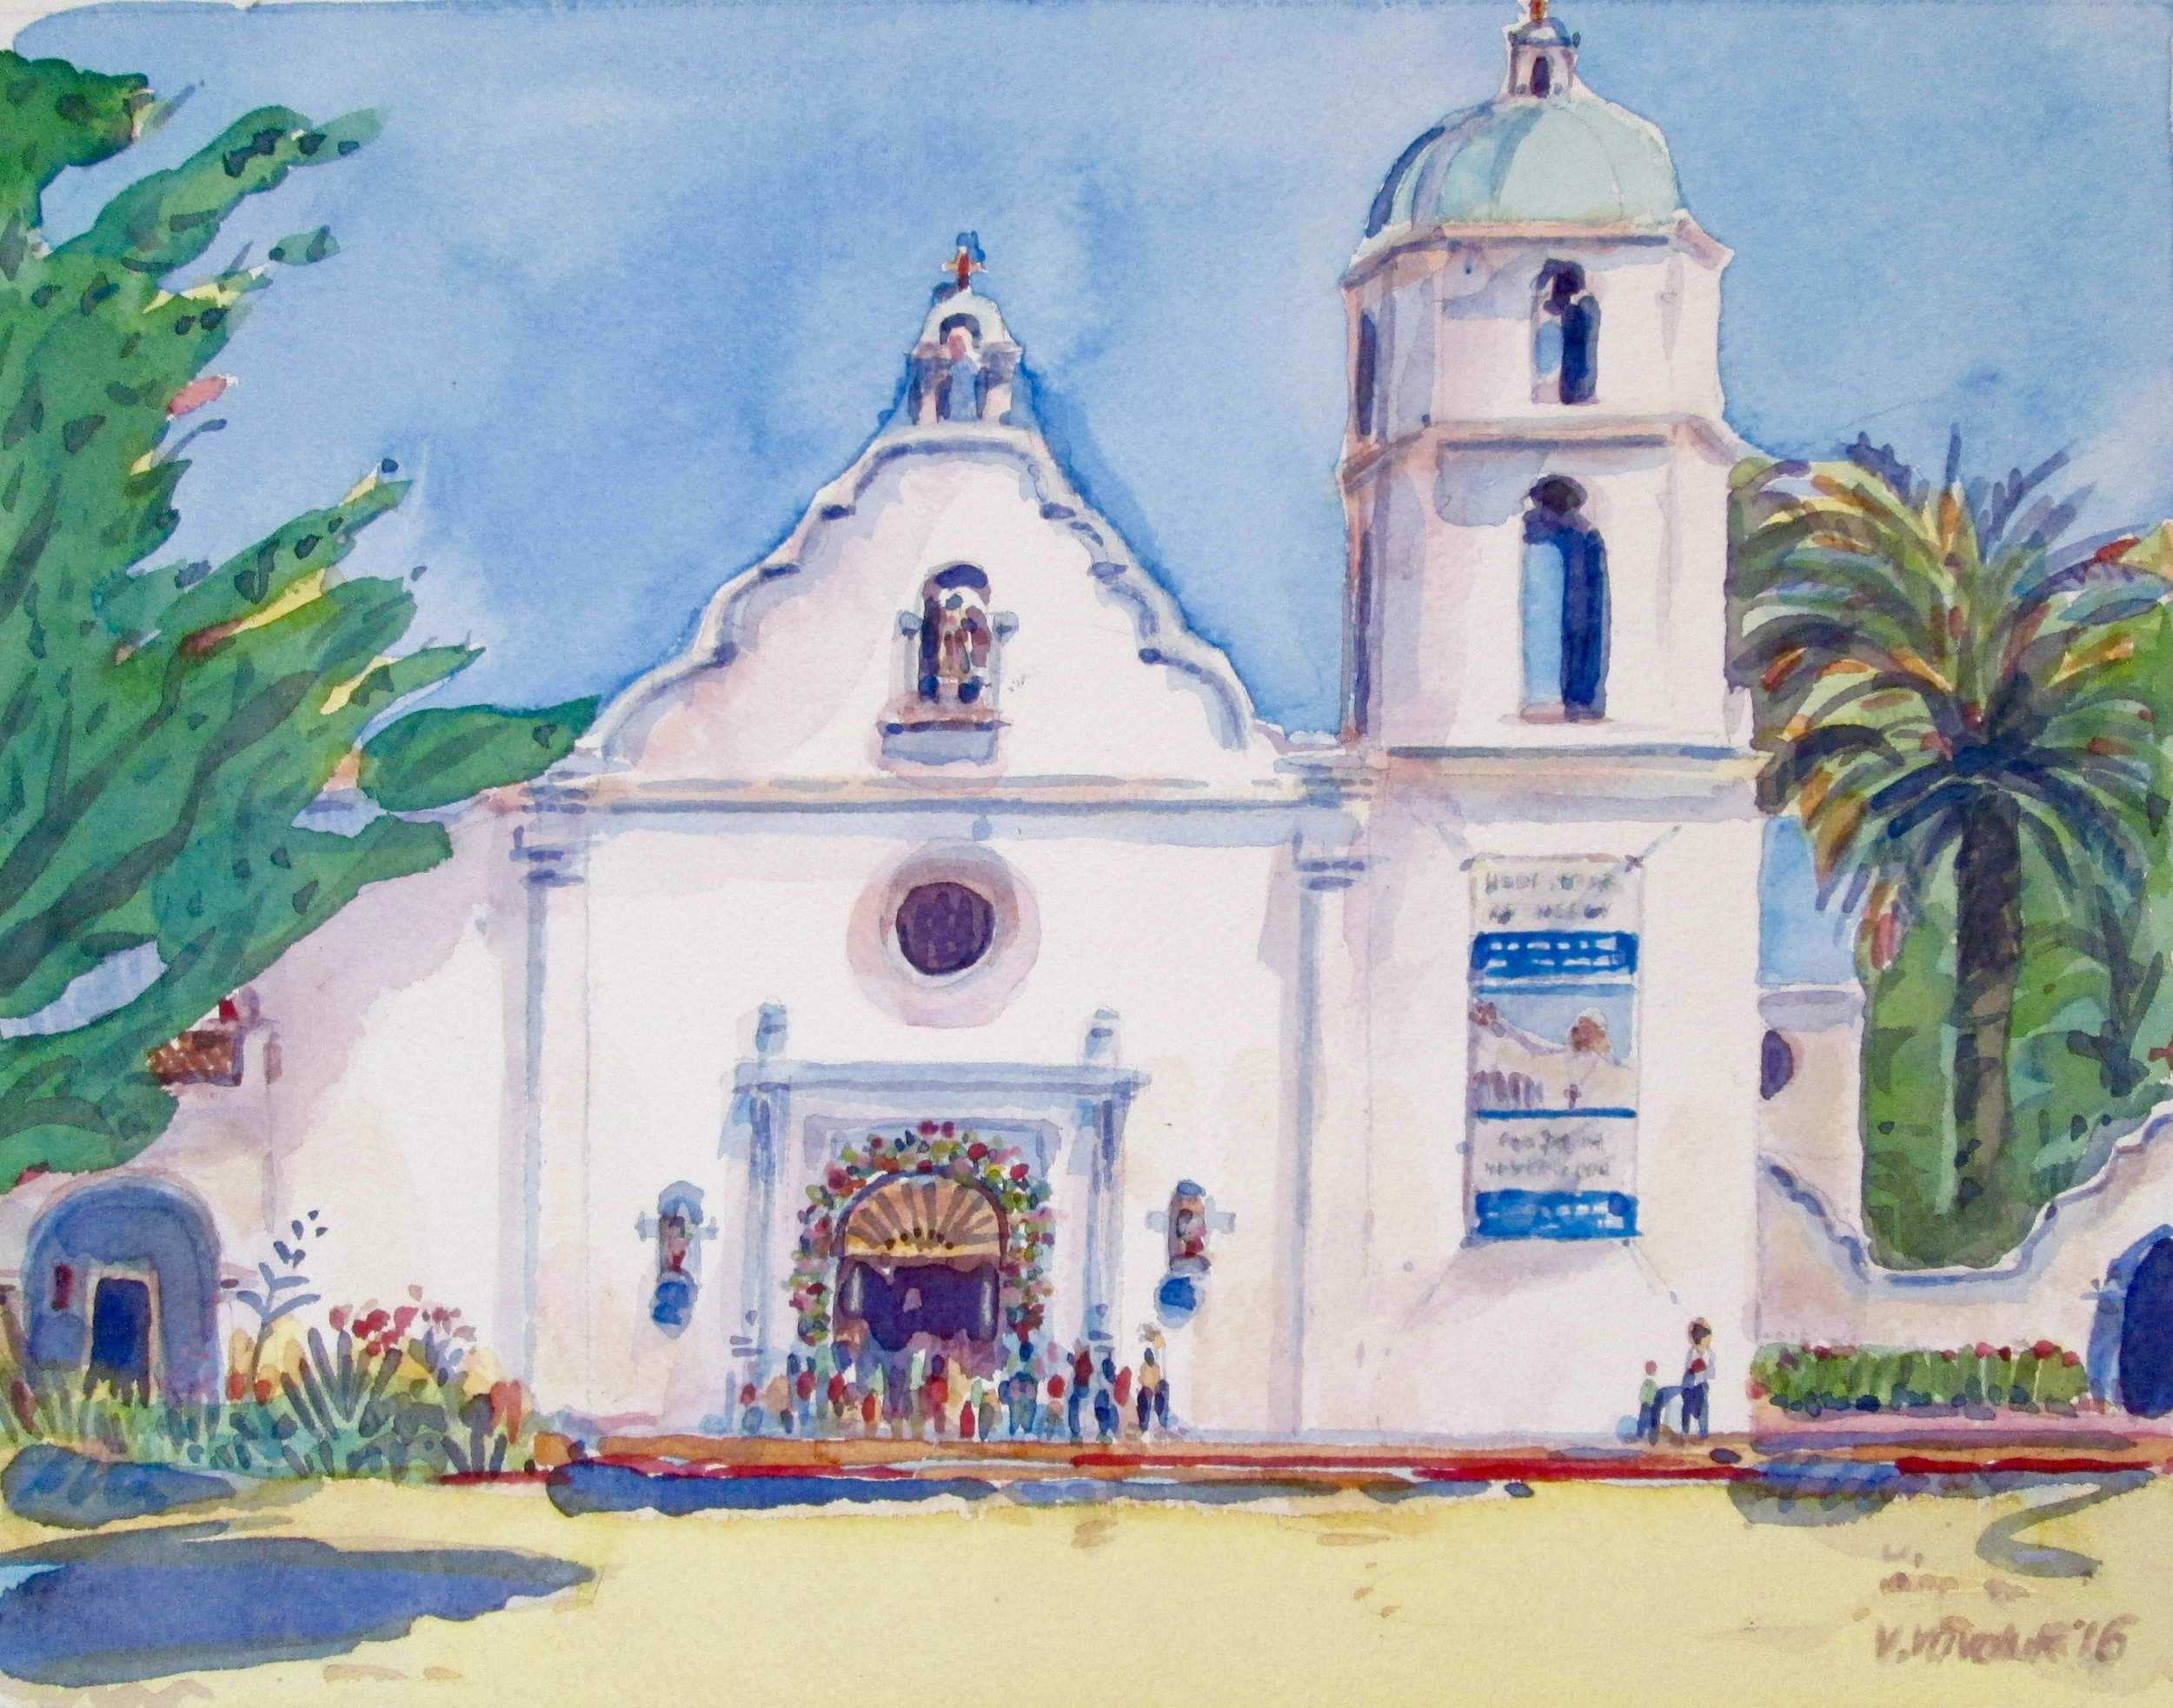 Mission San Luis Rey (Oceanside, CA)